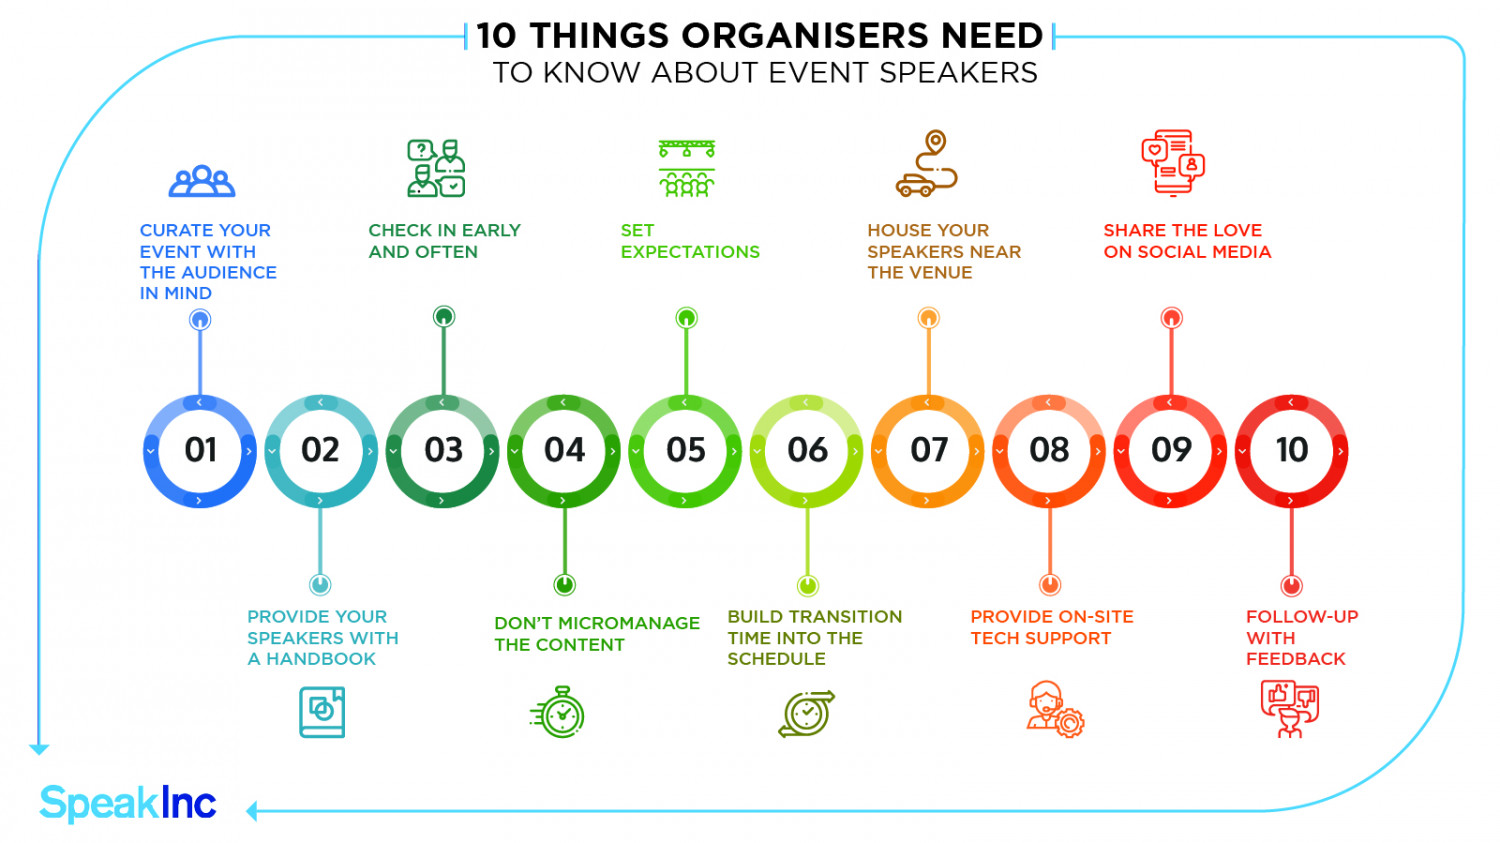 10 Things Organizers Need To Know About Event Speakers Infographic